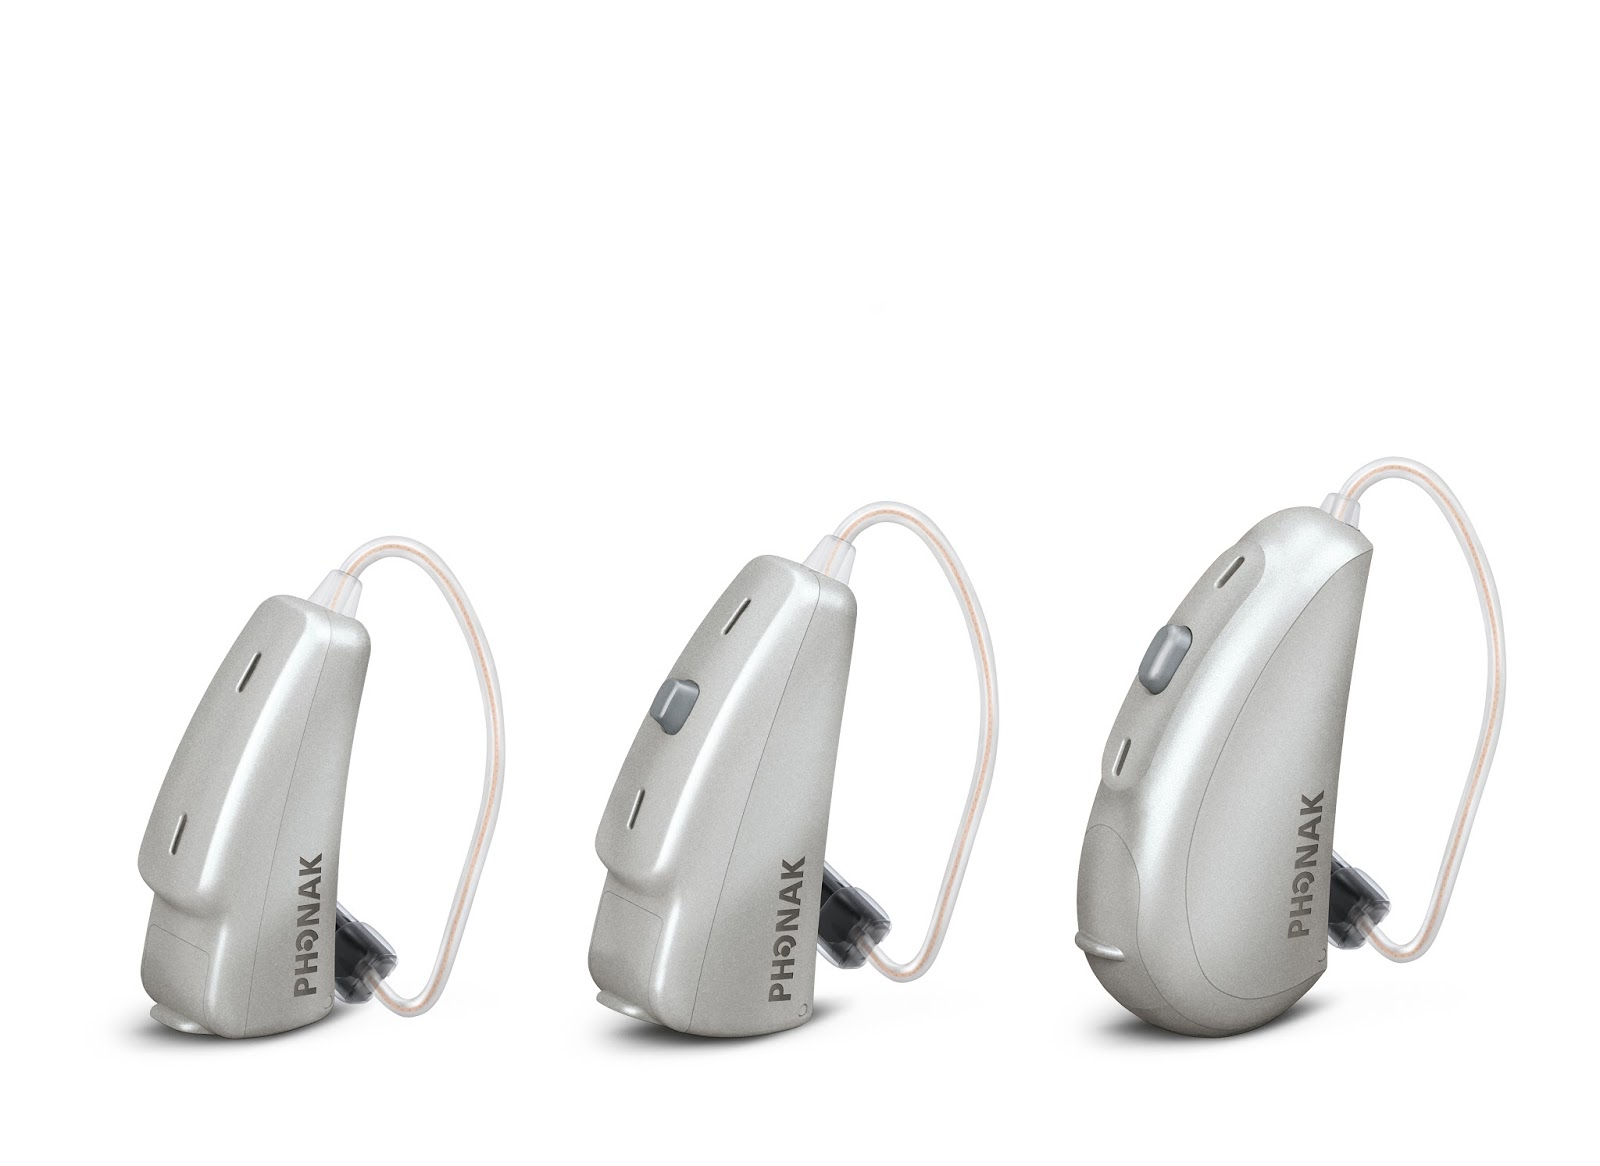 Phonak Audio Q50